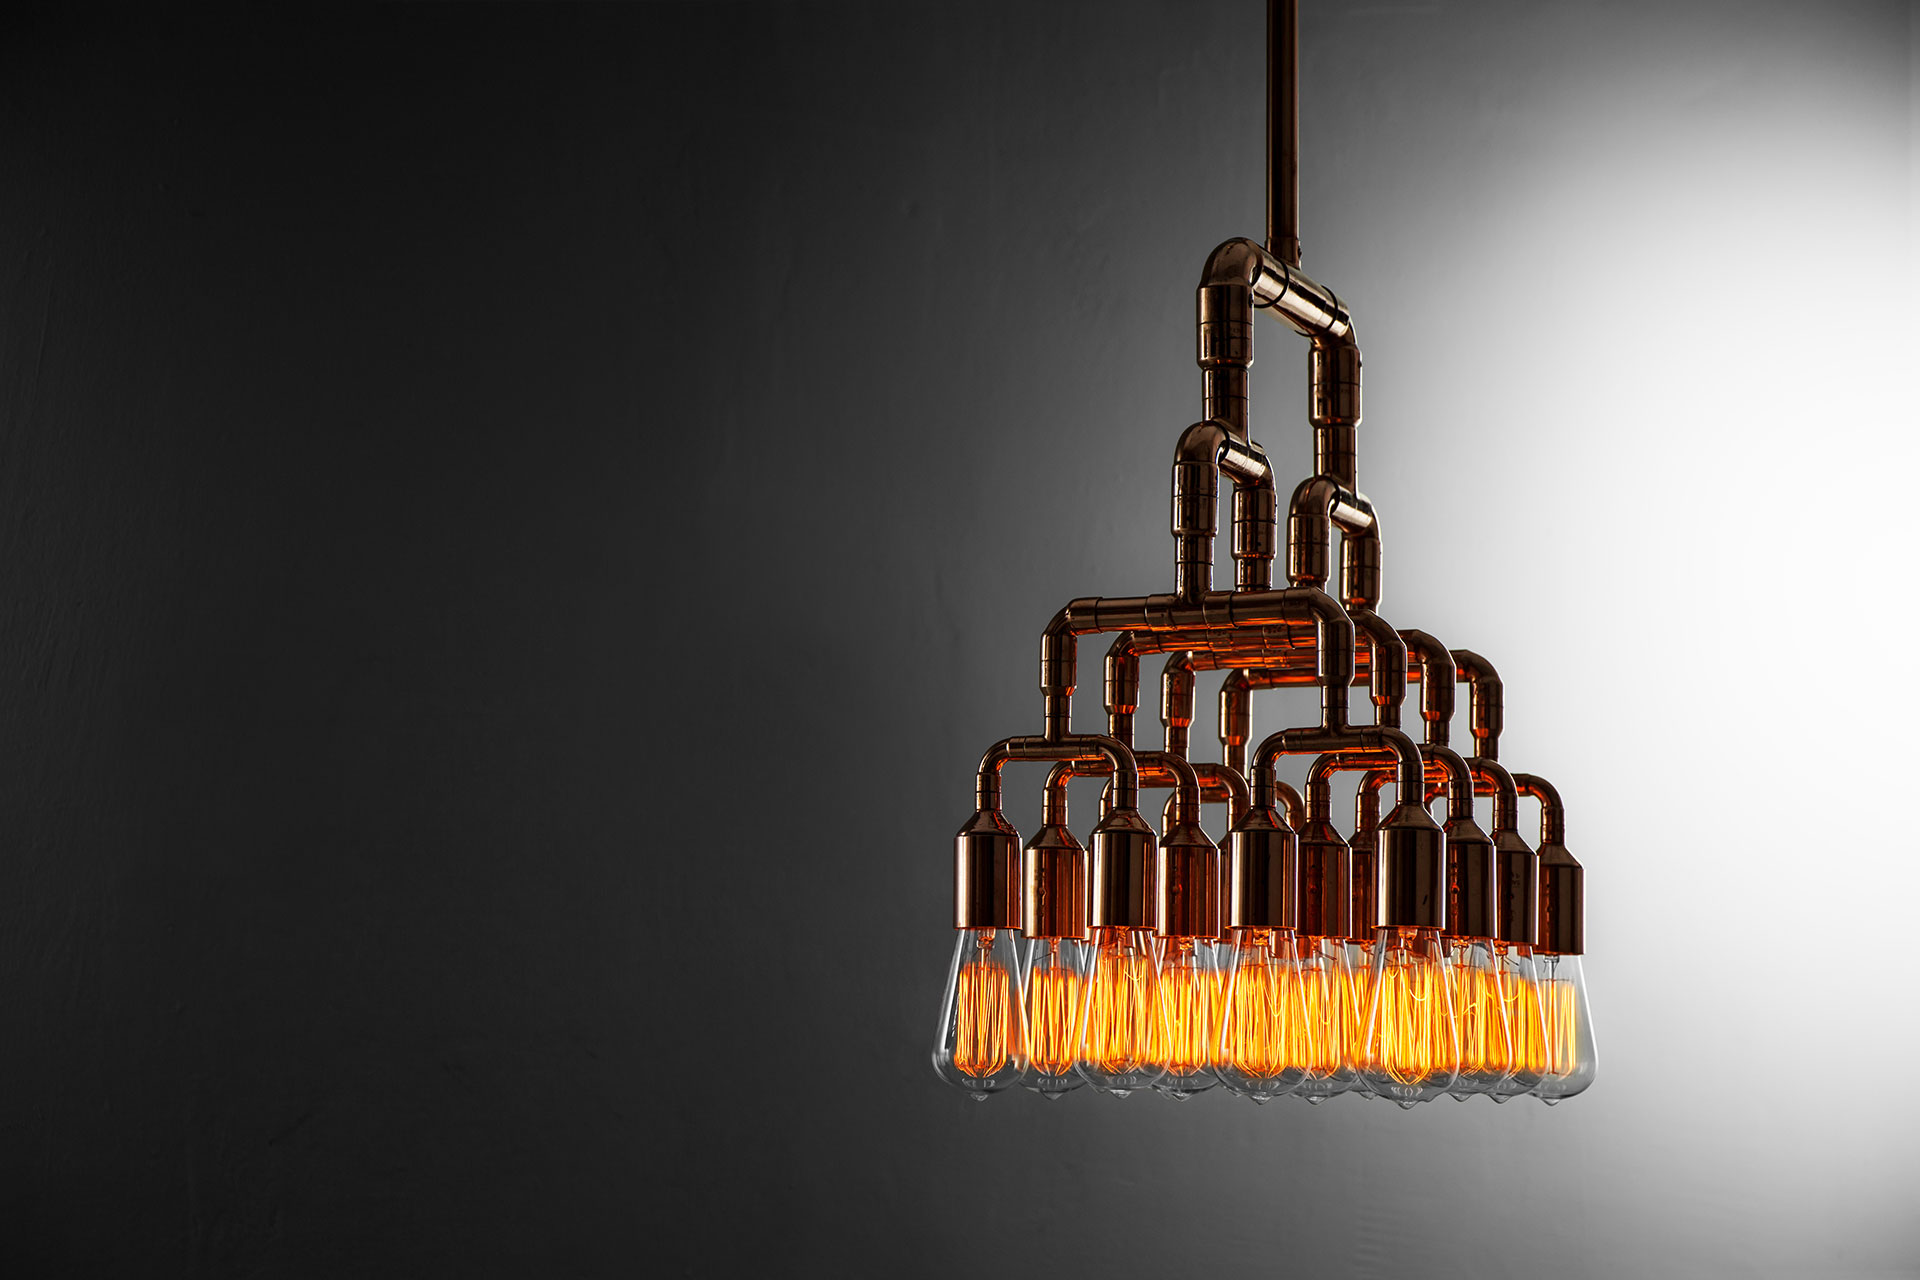 Large decorative ceiling lamp made of trendy copper or brass in loft style interior